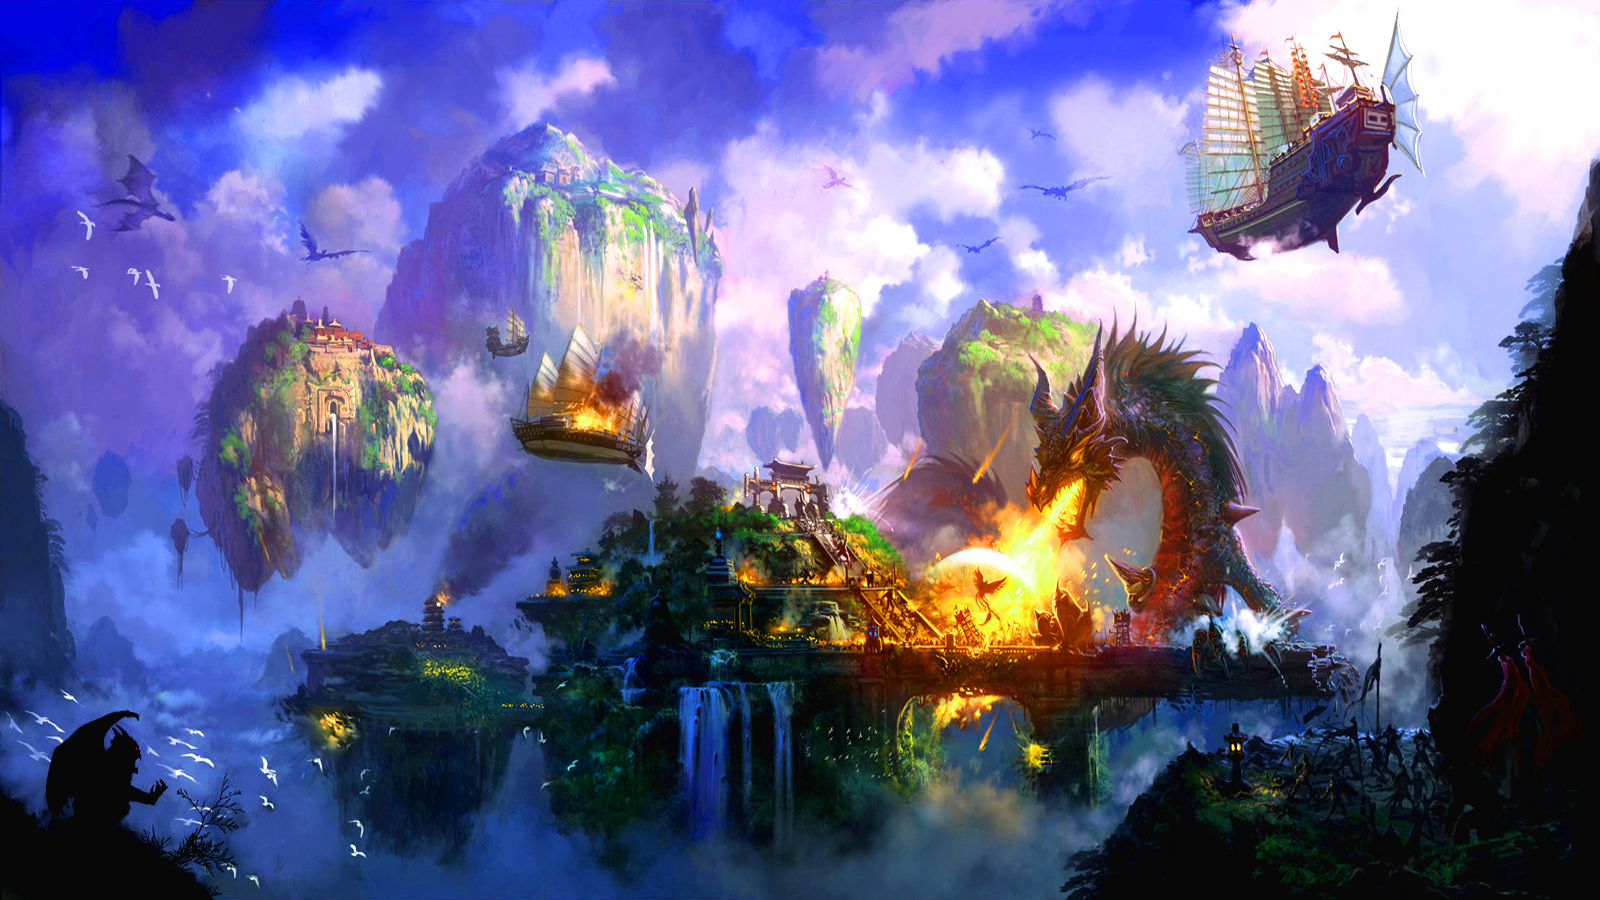 Runescape New Game Hd Wallpapers All Hd Wallpapers